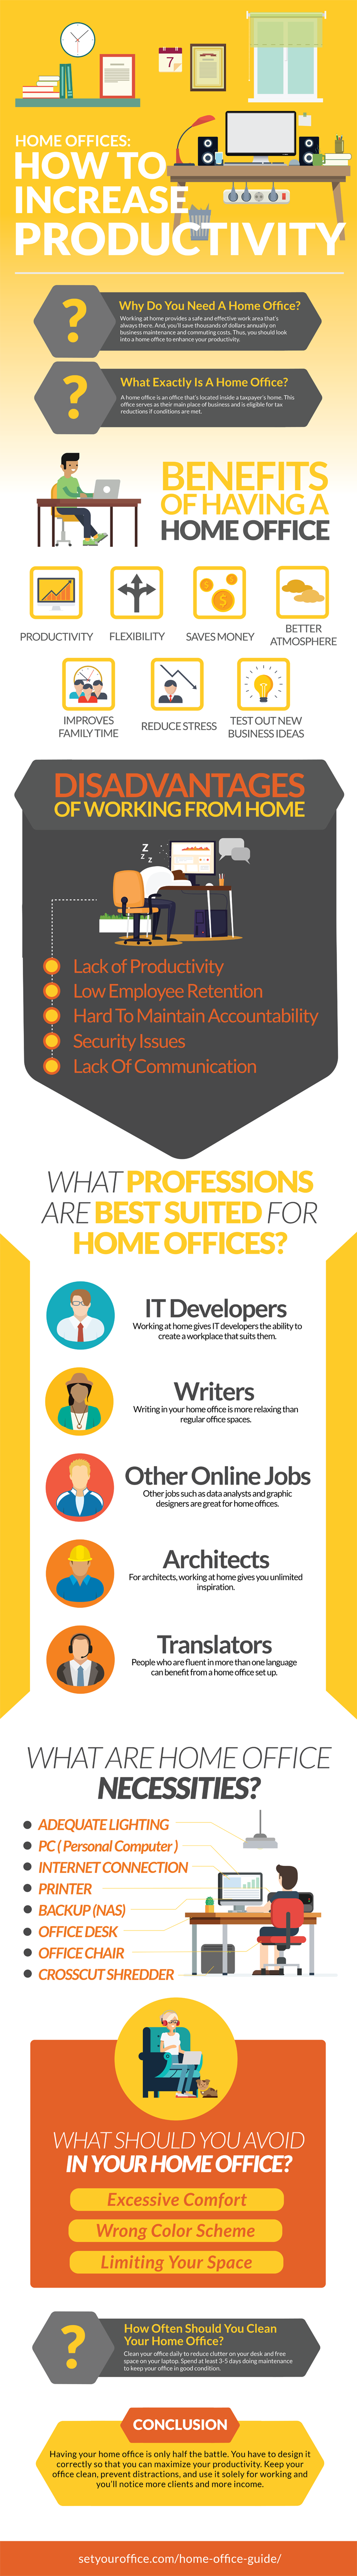 guide to home office